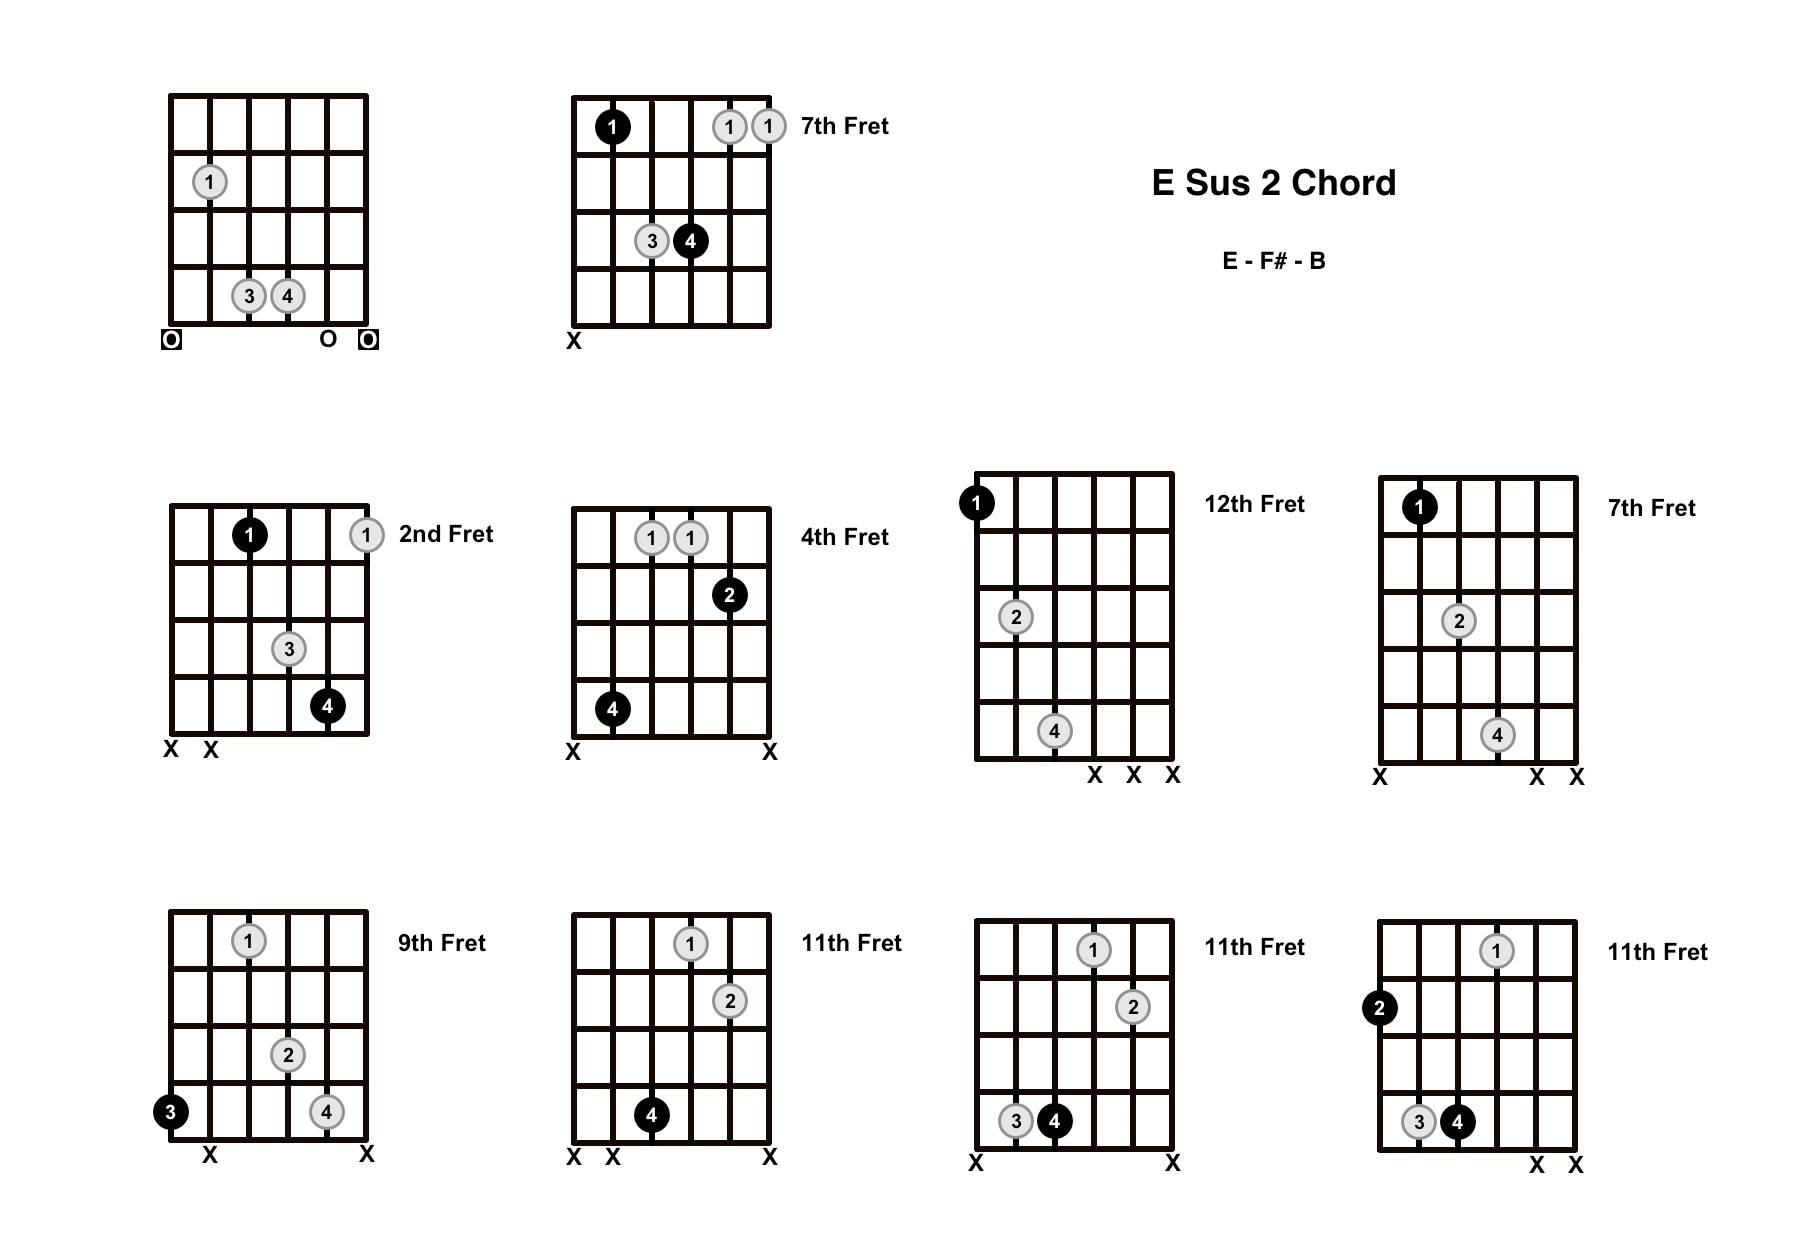 E Sus 2 Chord On The Guitar (E Suspended 2) – Diagrams, Finger Positions and Theory